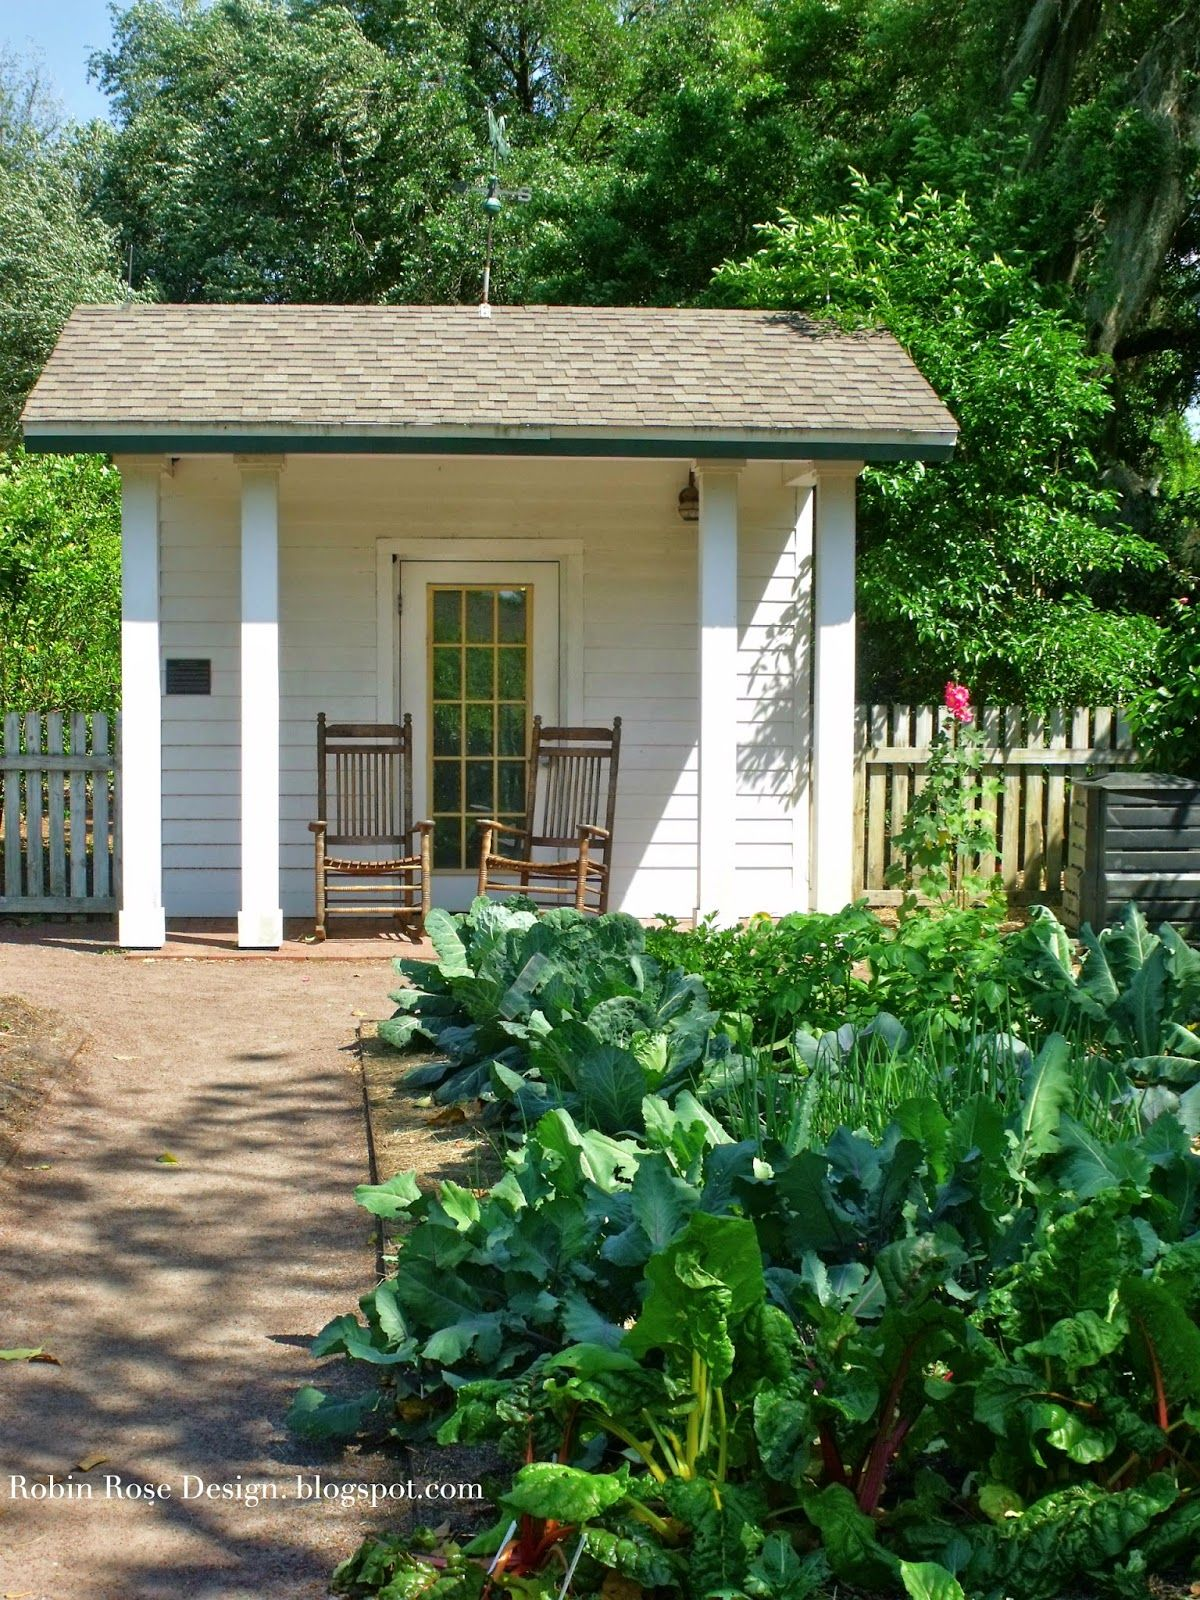 Florida Day Trips Leu Gardens Great Affordable Day Trips